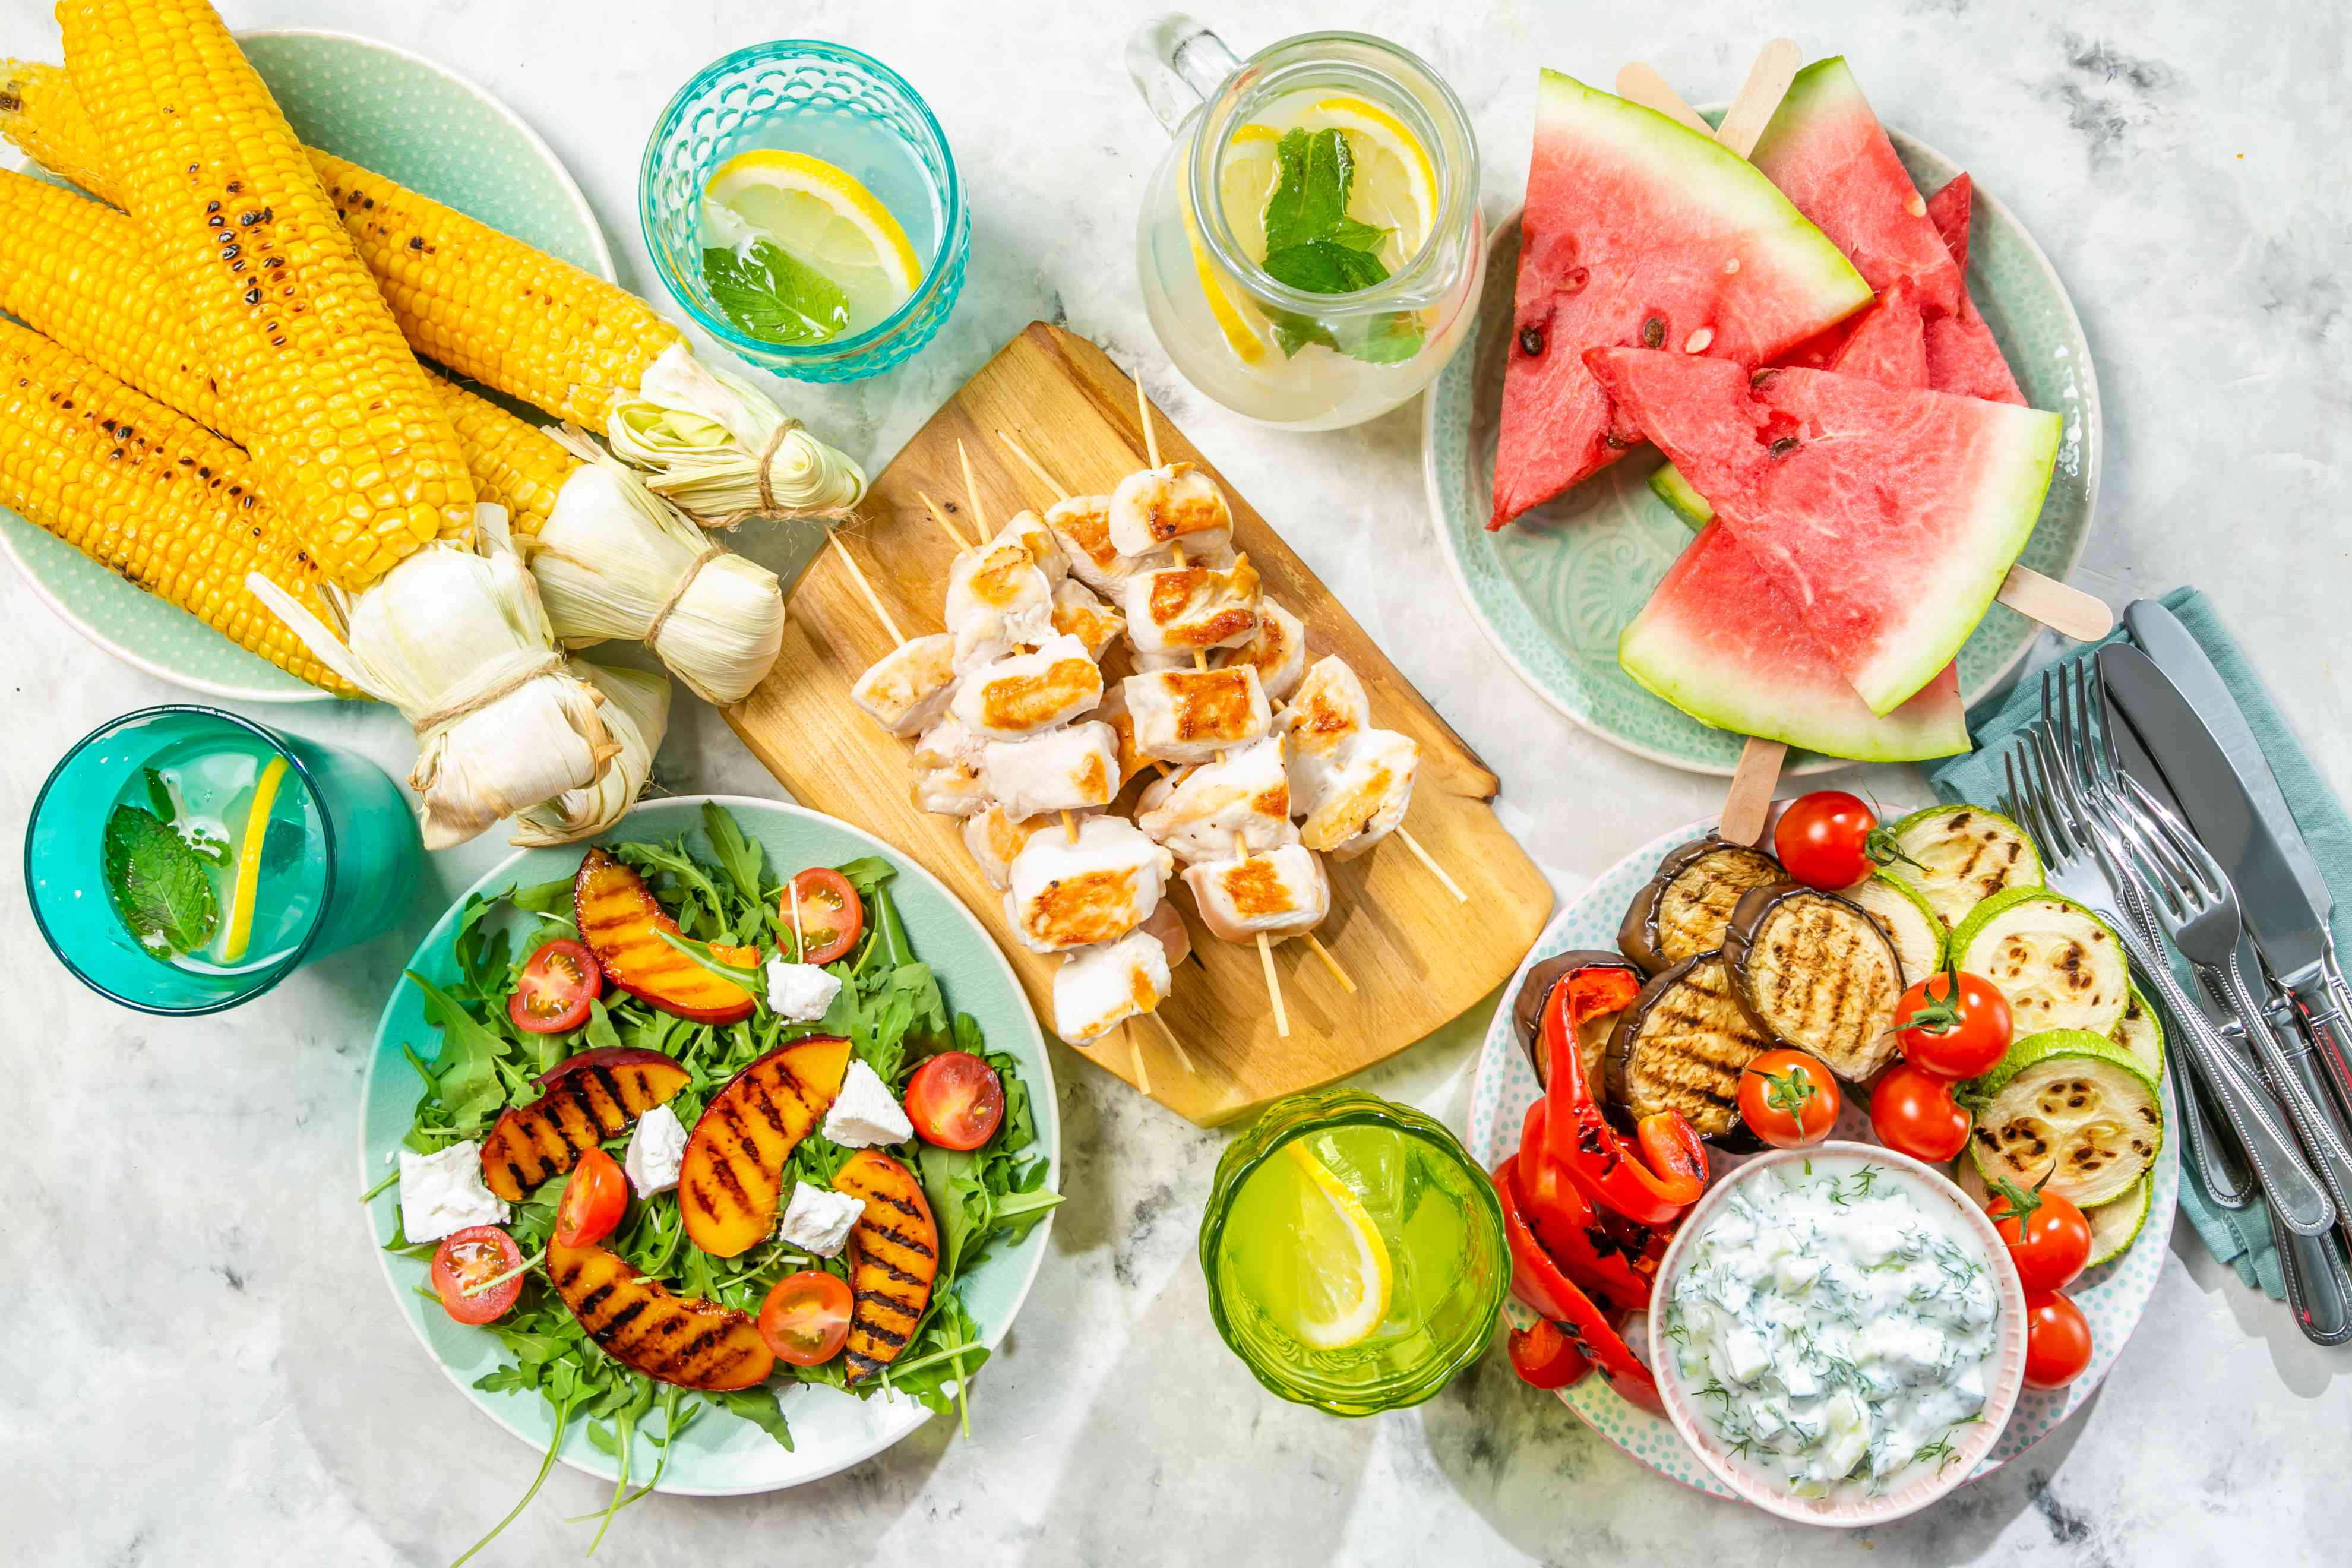 Summer bbq party concept - grilled chicken, vegetables, corn, salad, top view